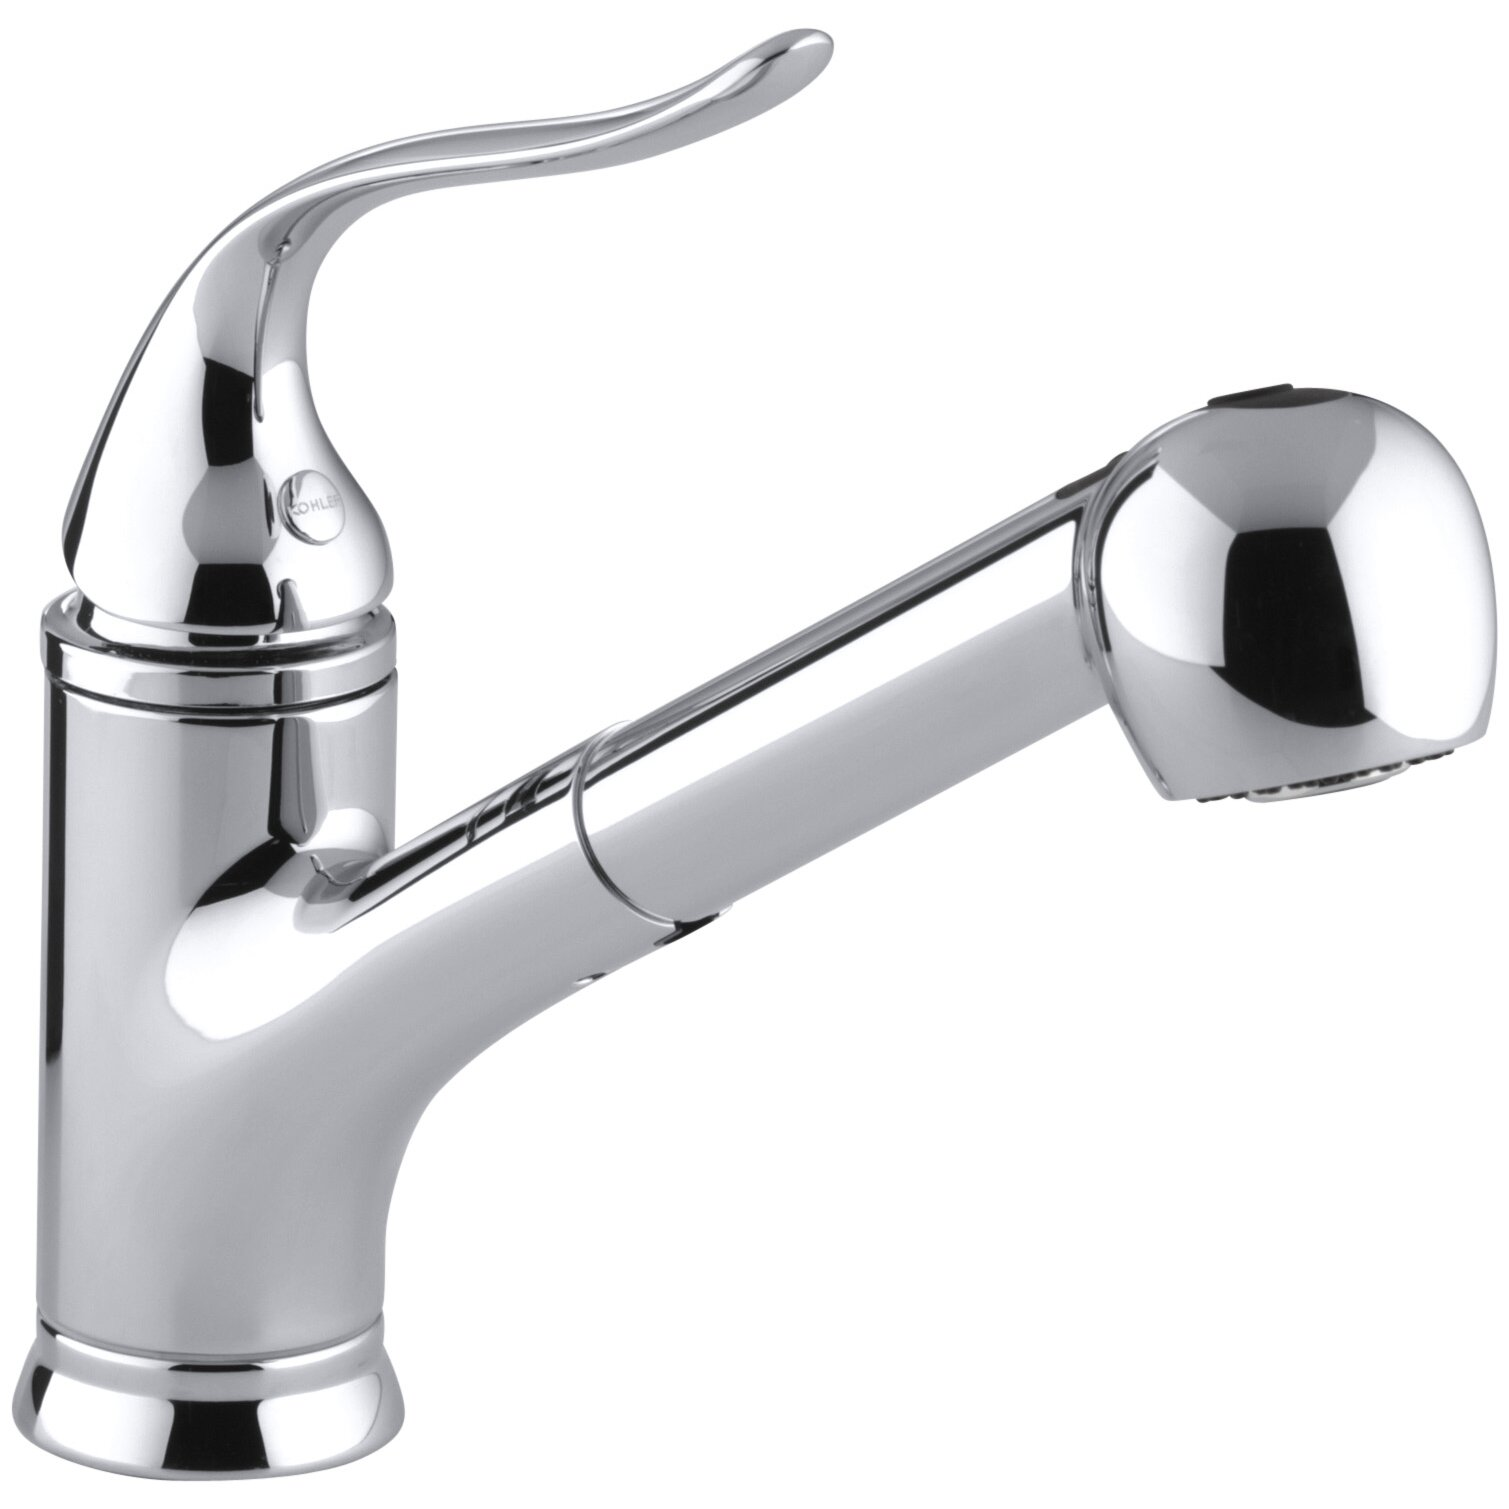 Coralais Single-Hole or Three-Hole Kitchen Sink Faucet with Pullout ...